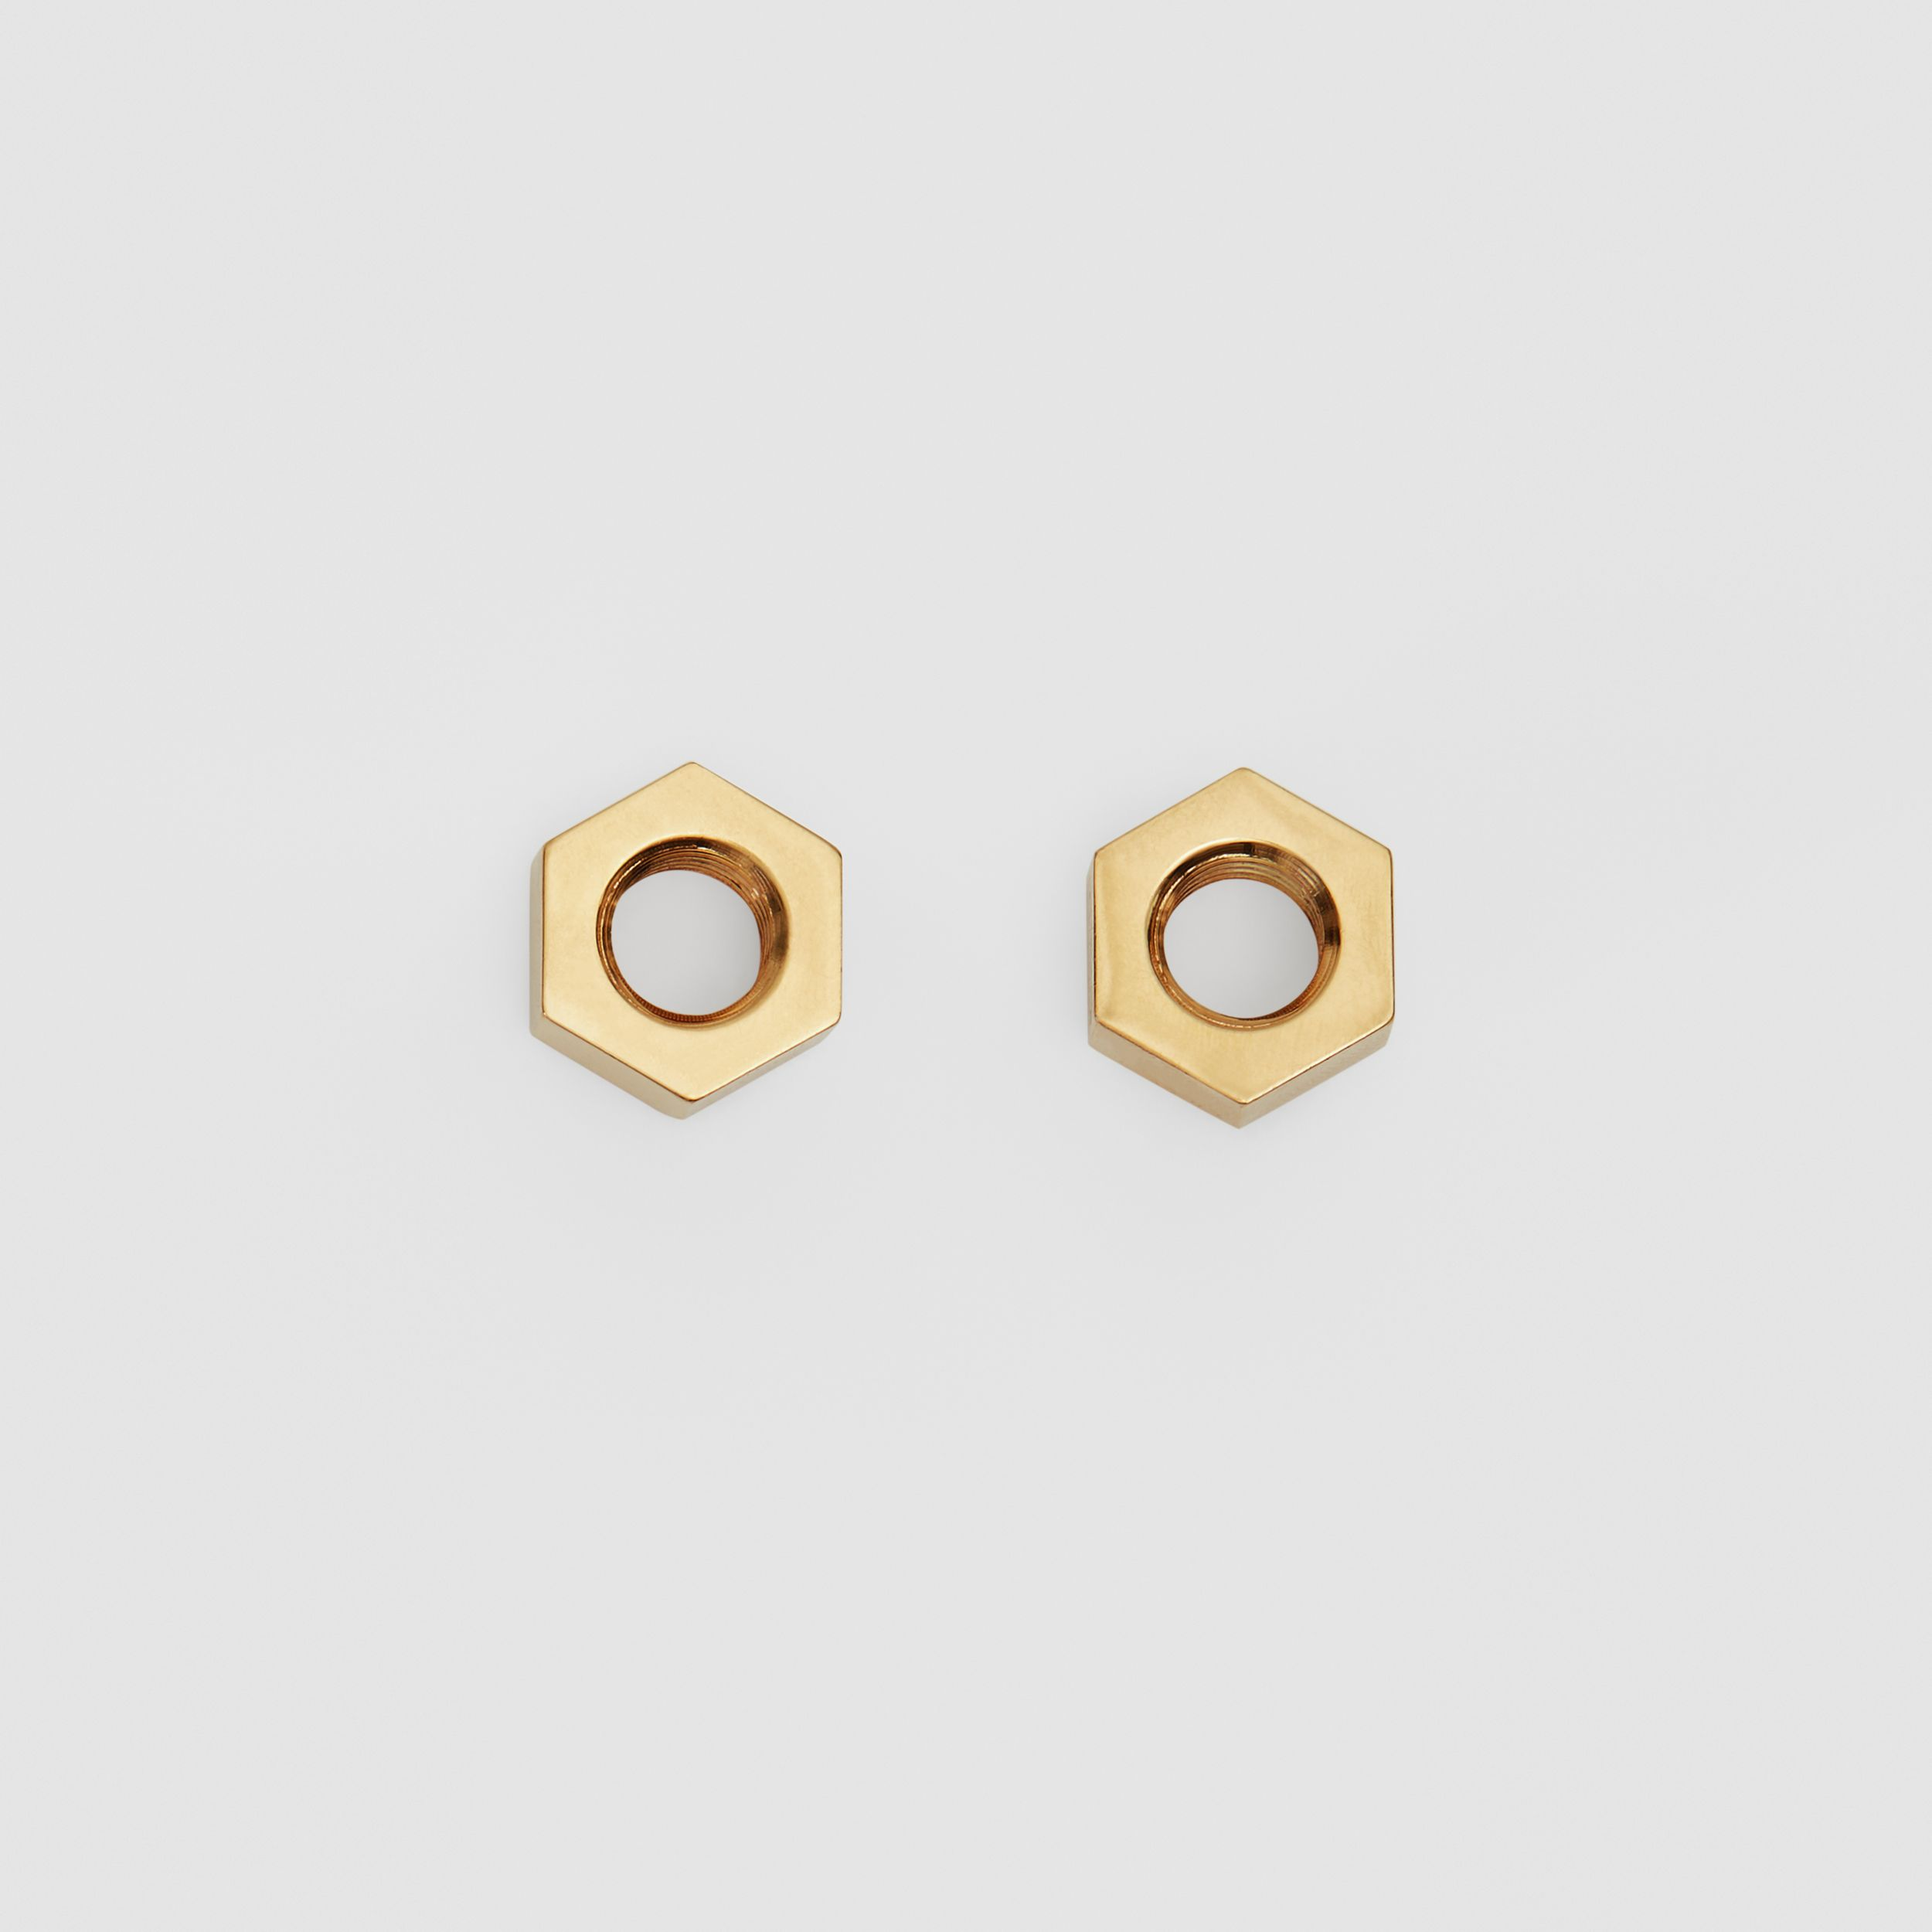 Gold-plated Nut Earrings in Light - Women | Burberry Australia - 1